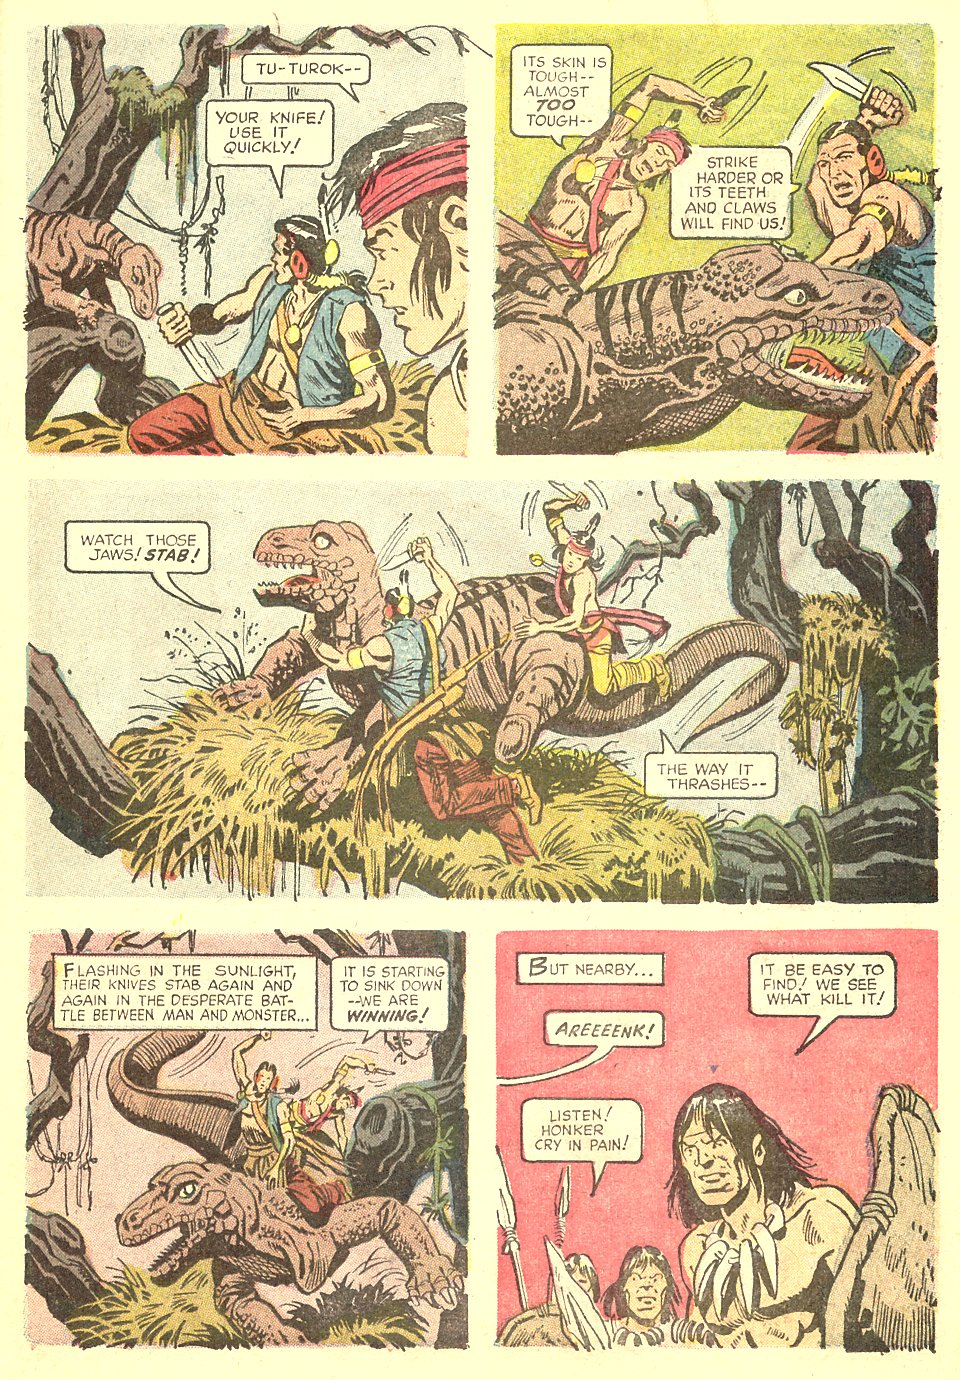 Read online Turok, Son of Stone comic -  Issue #68 - 23